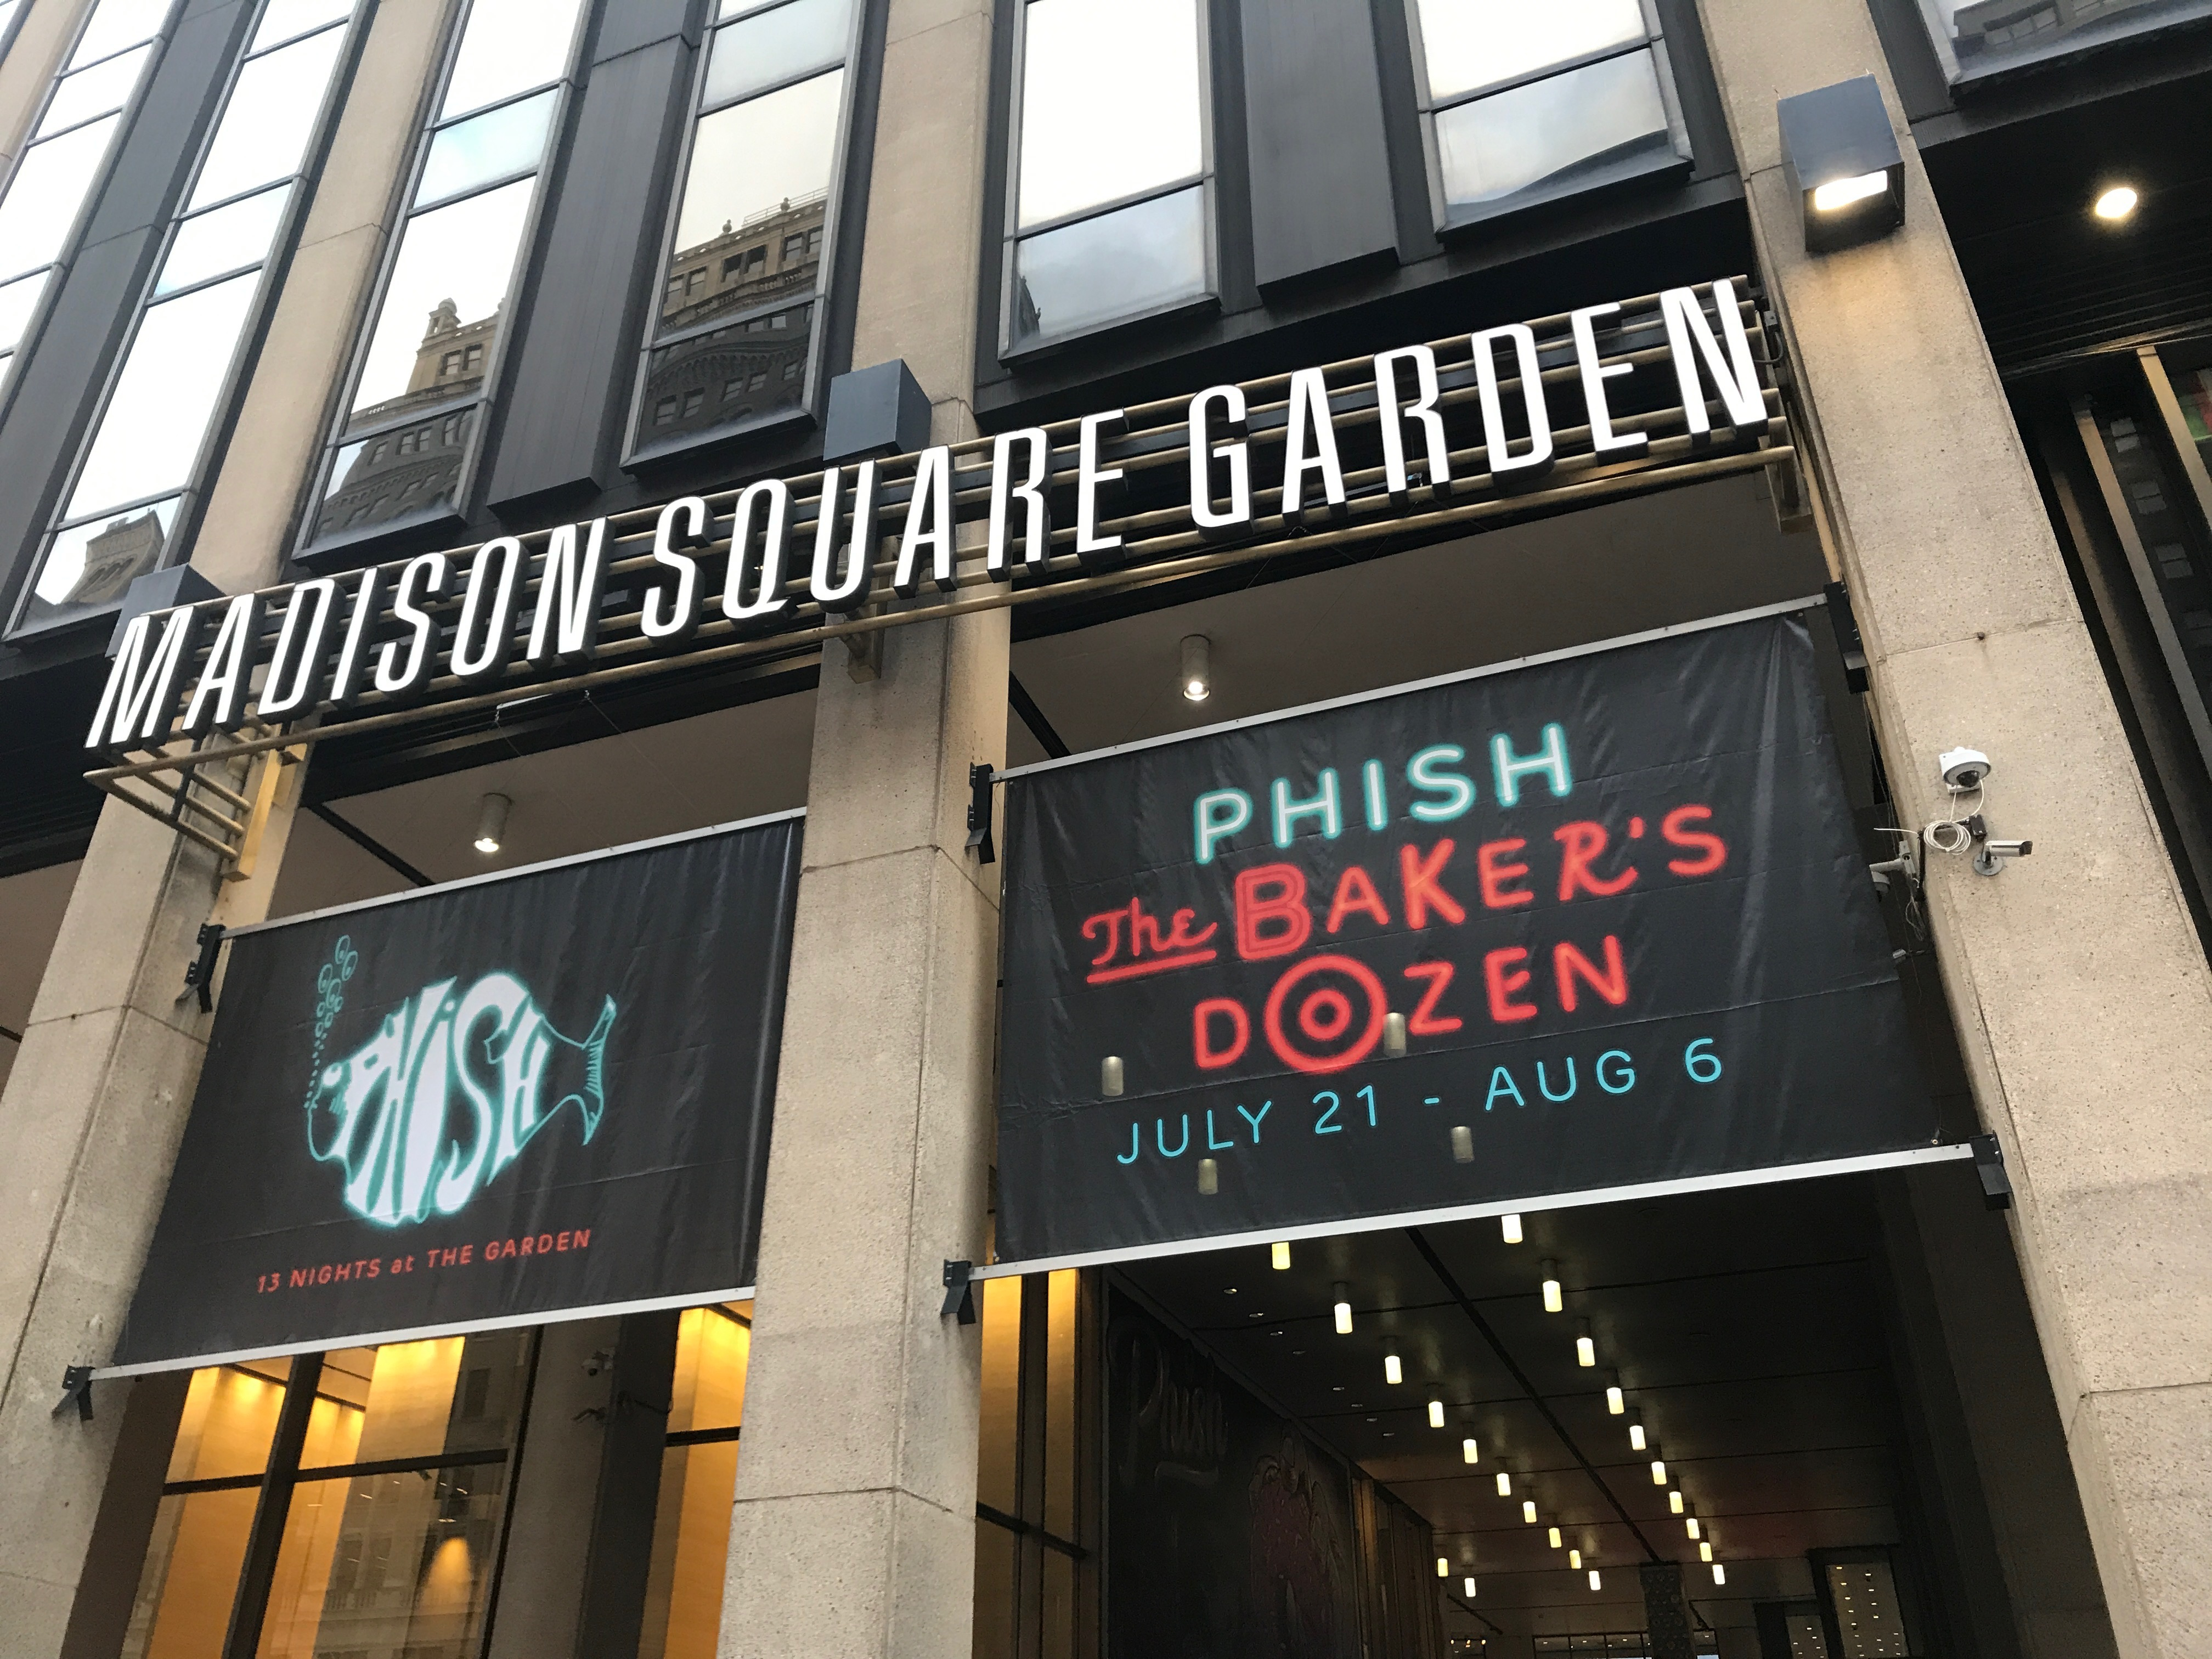 Phish-Inspired Business Idea #3: Don't Live Inside The Gloom